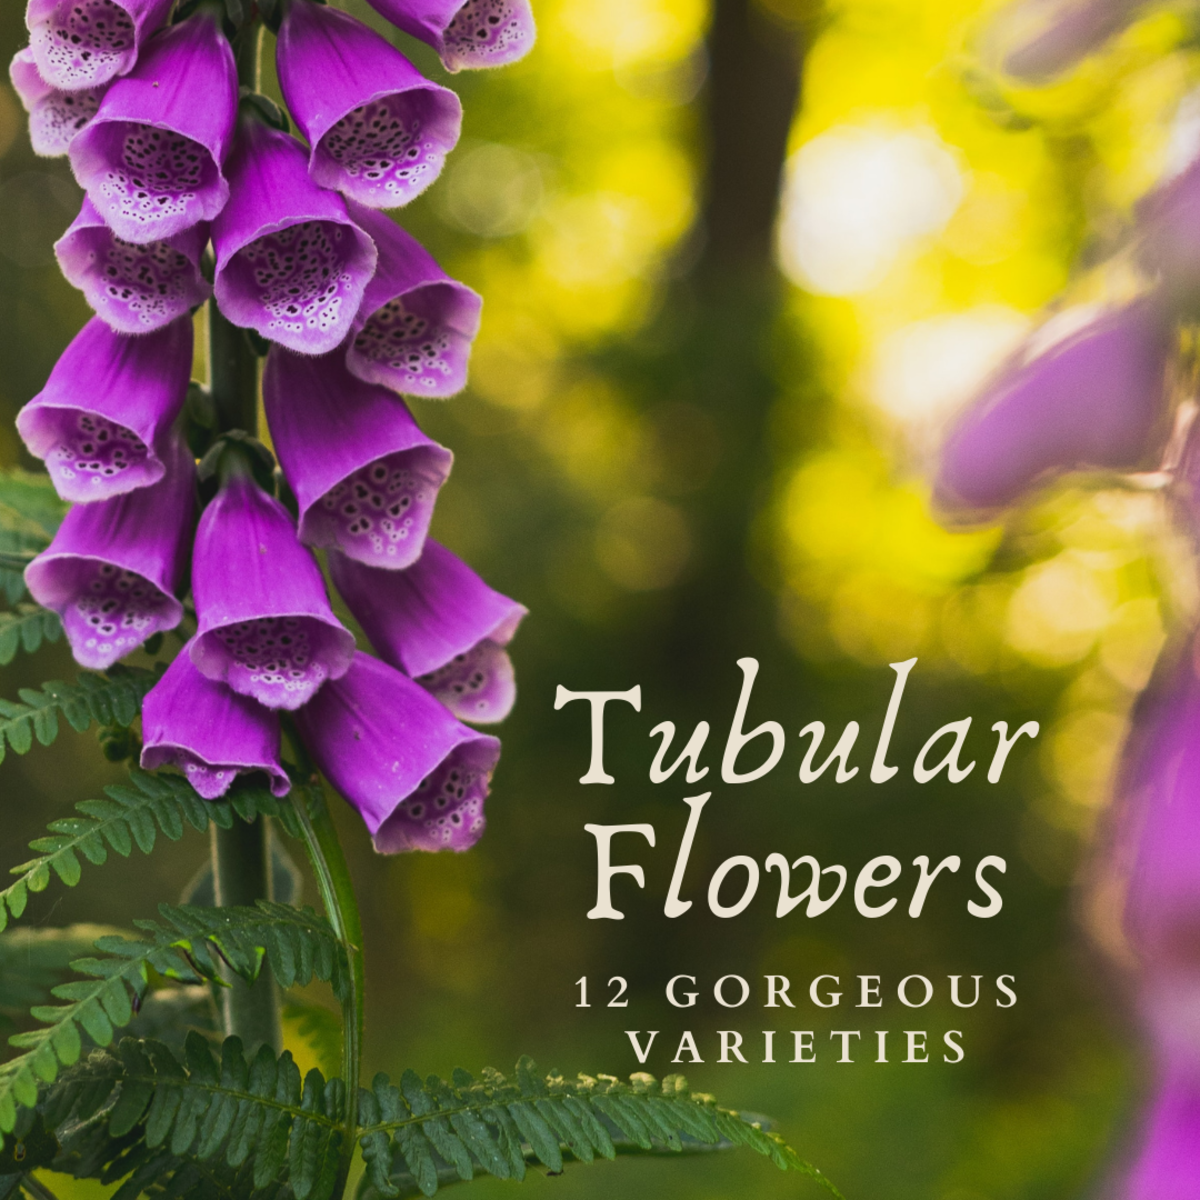 A List of Tubular Flowers: Top 12 Tube-Shaped Flowering Plants